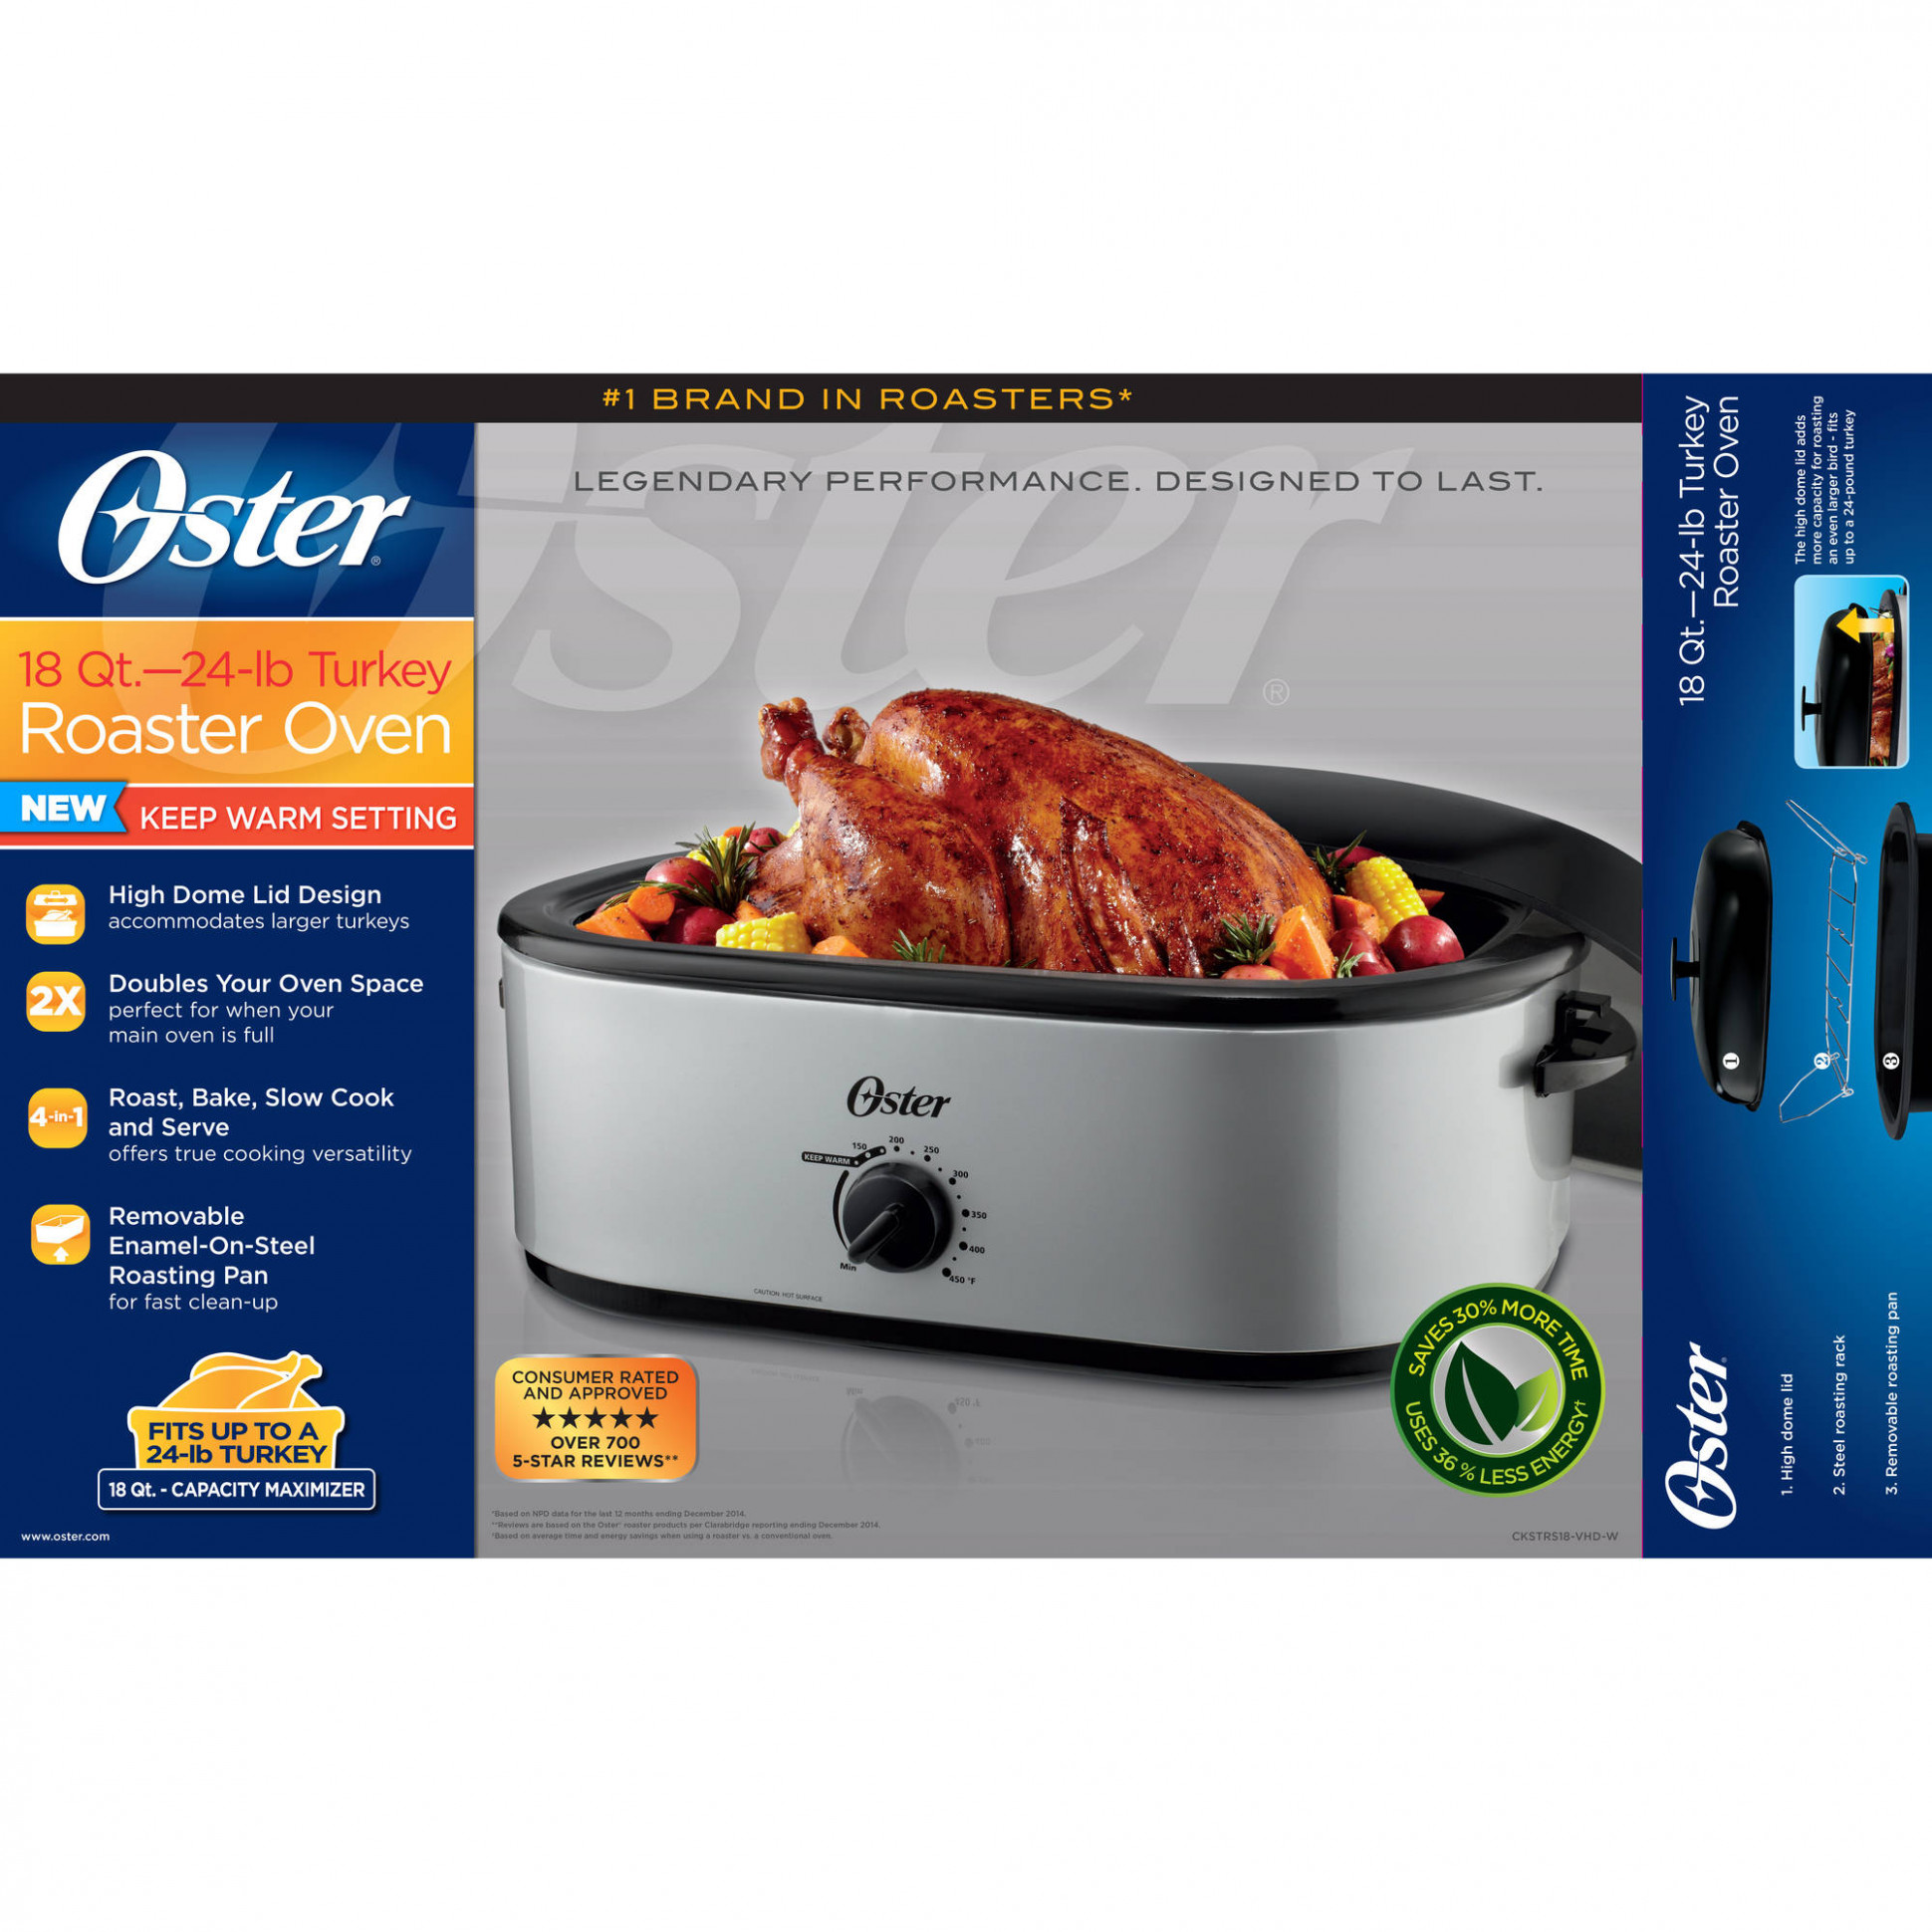 18 quart roaster oven recipes - oster roaster oven recipes chicken